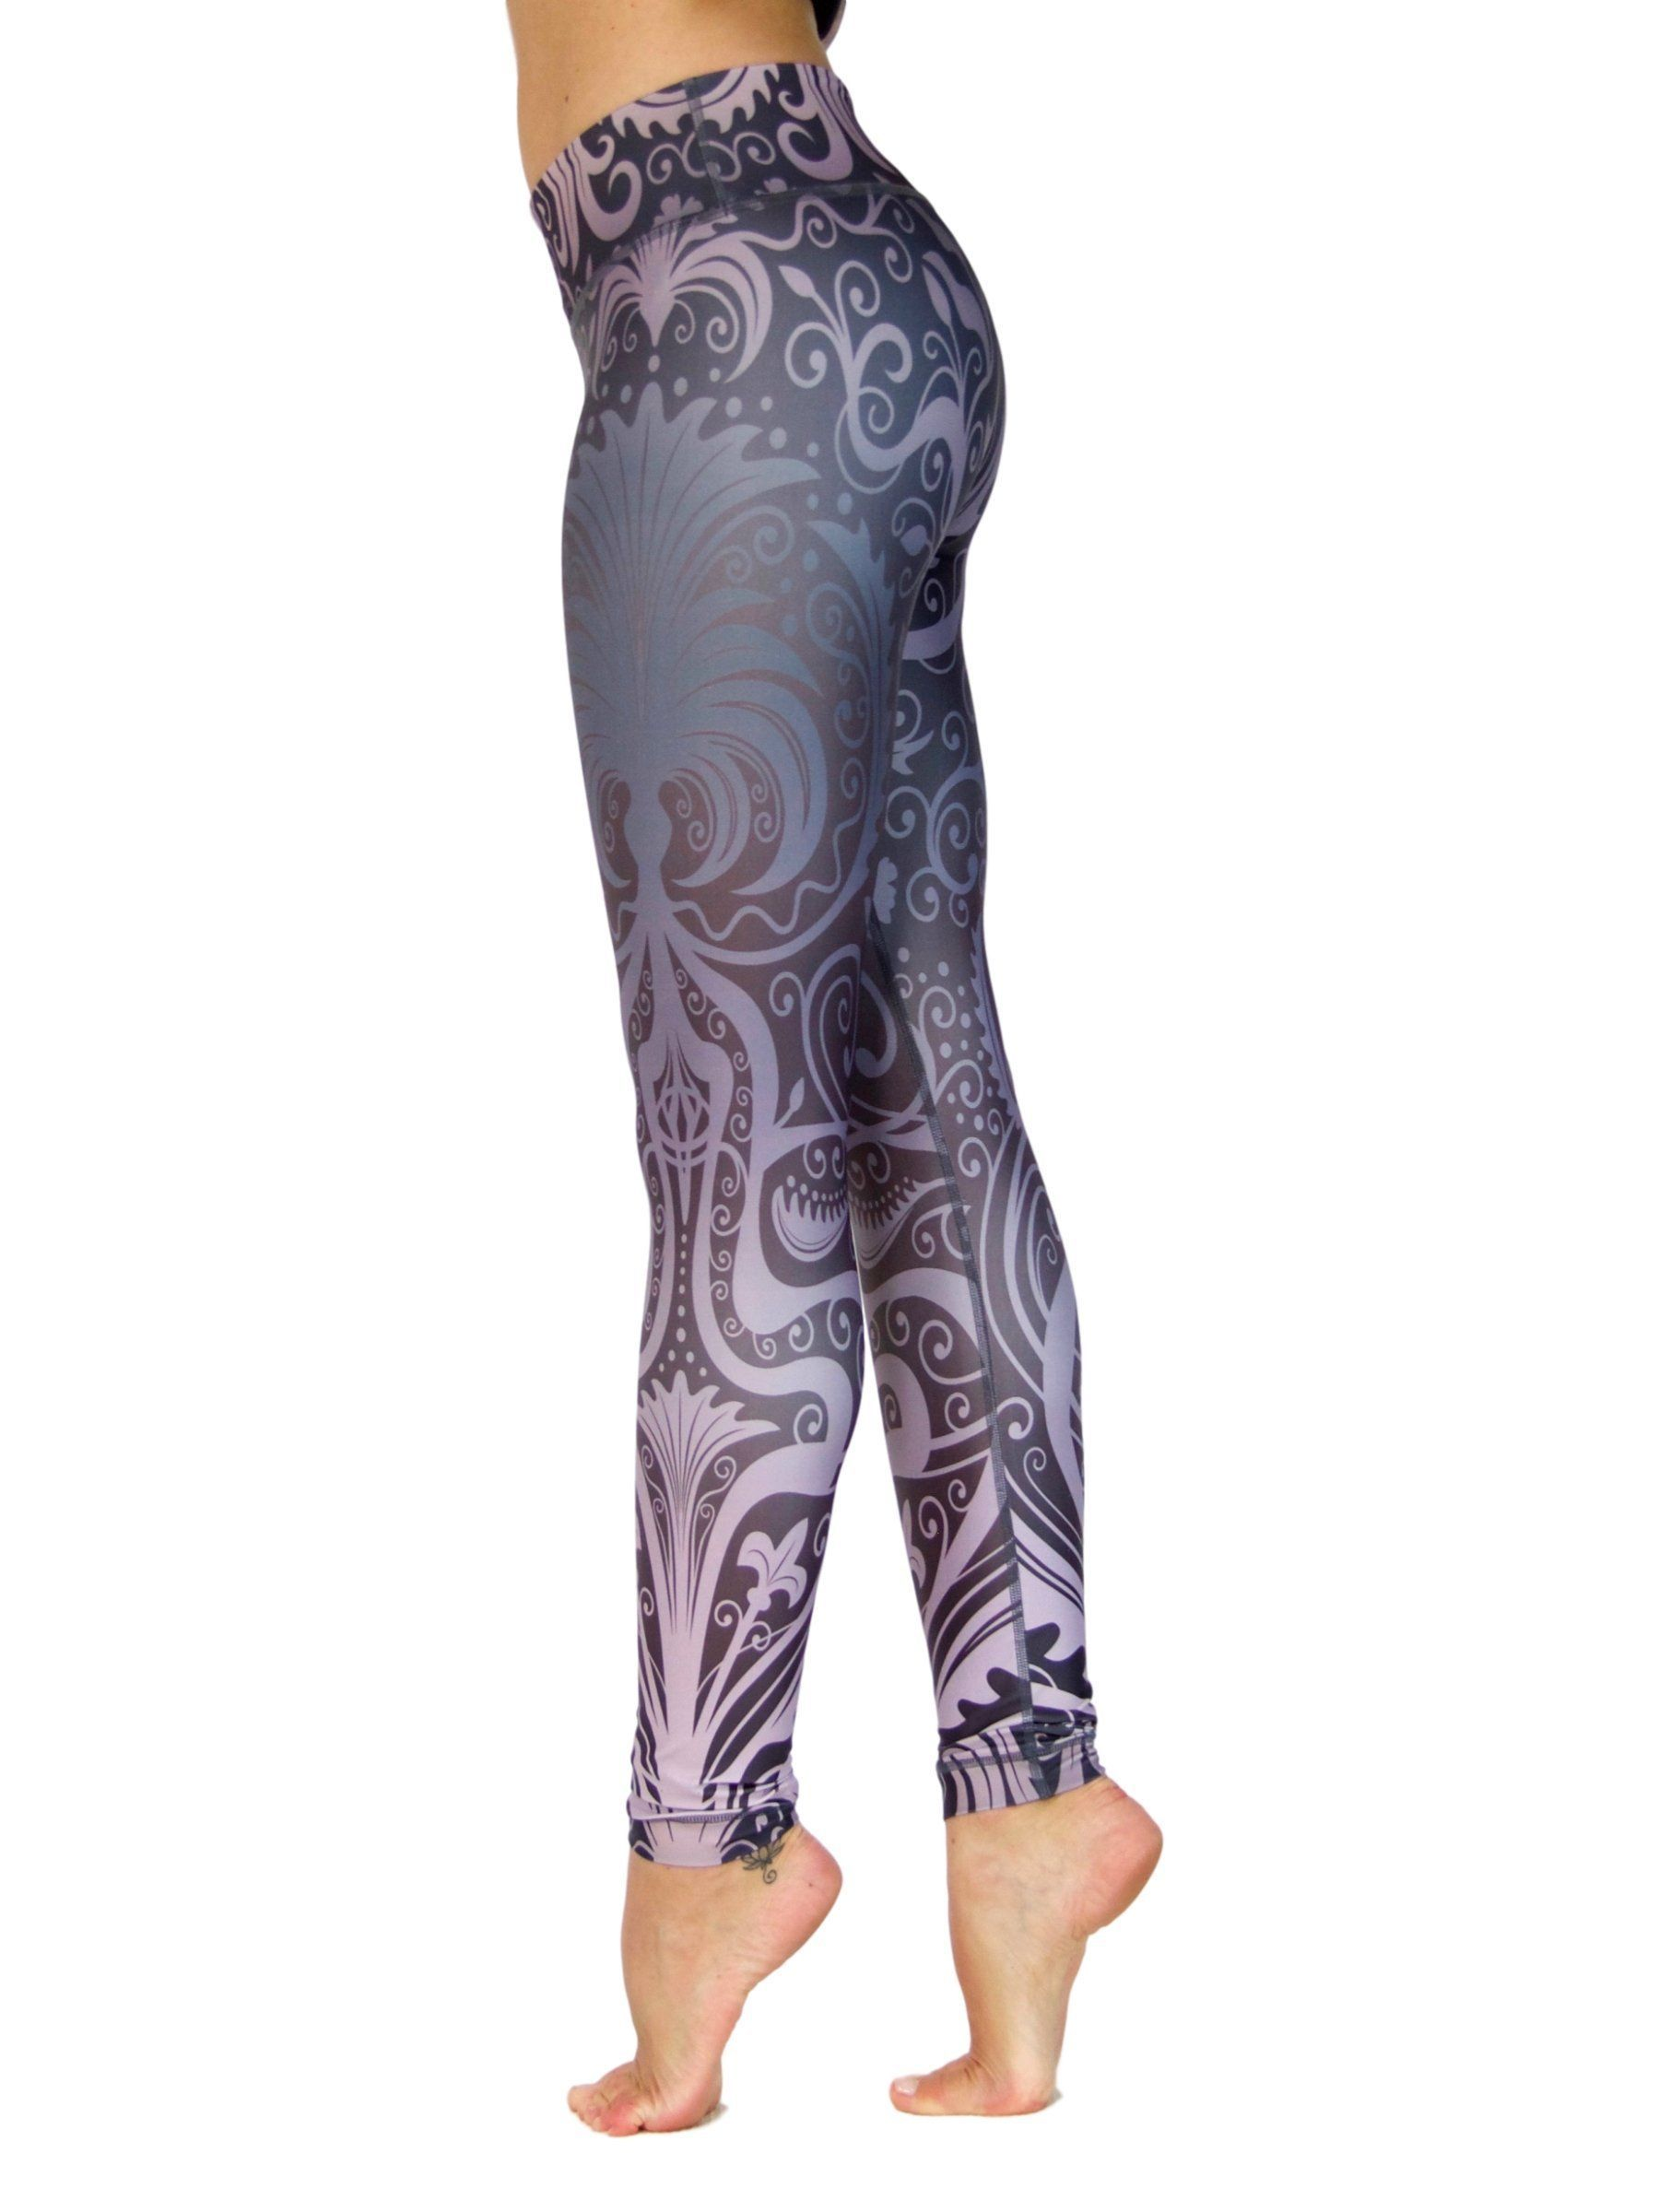 Wild Tribe by Niyama - High Quality, , Yoga Legging for Movement Artists.